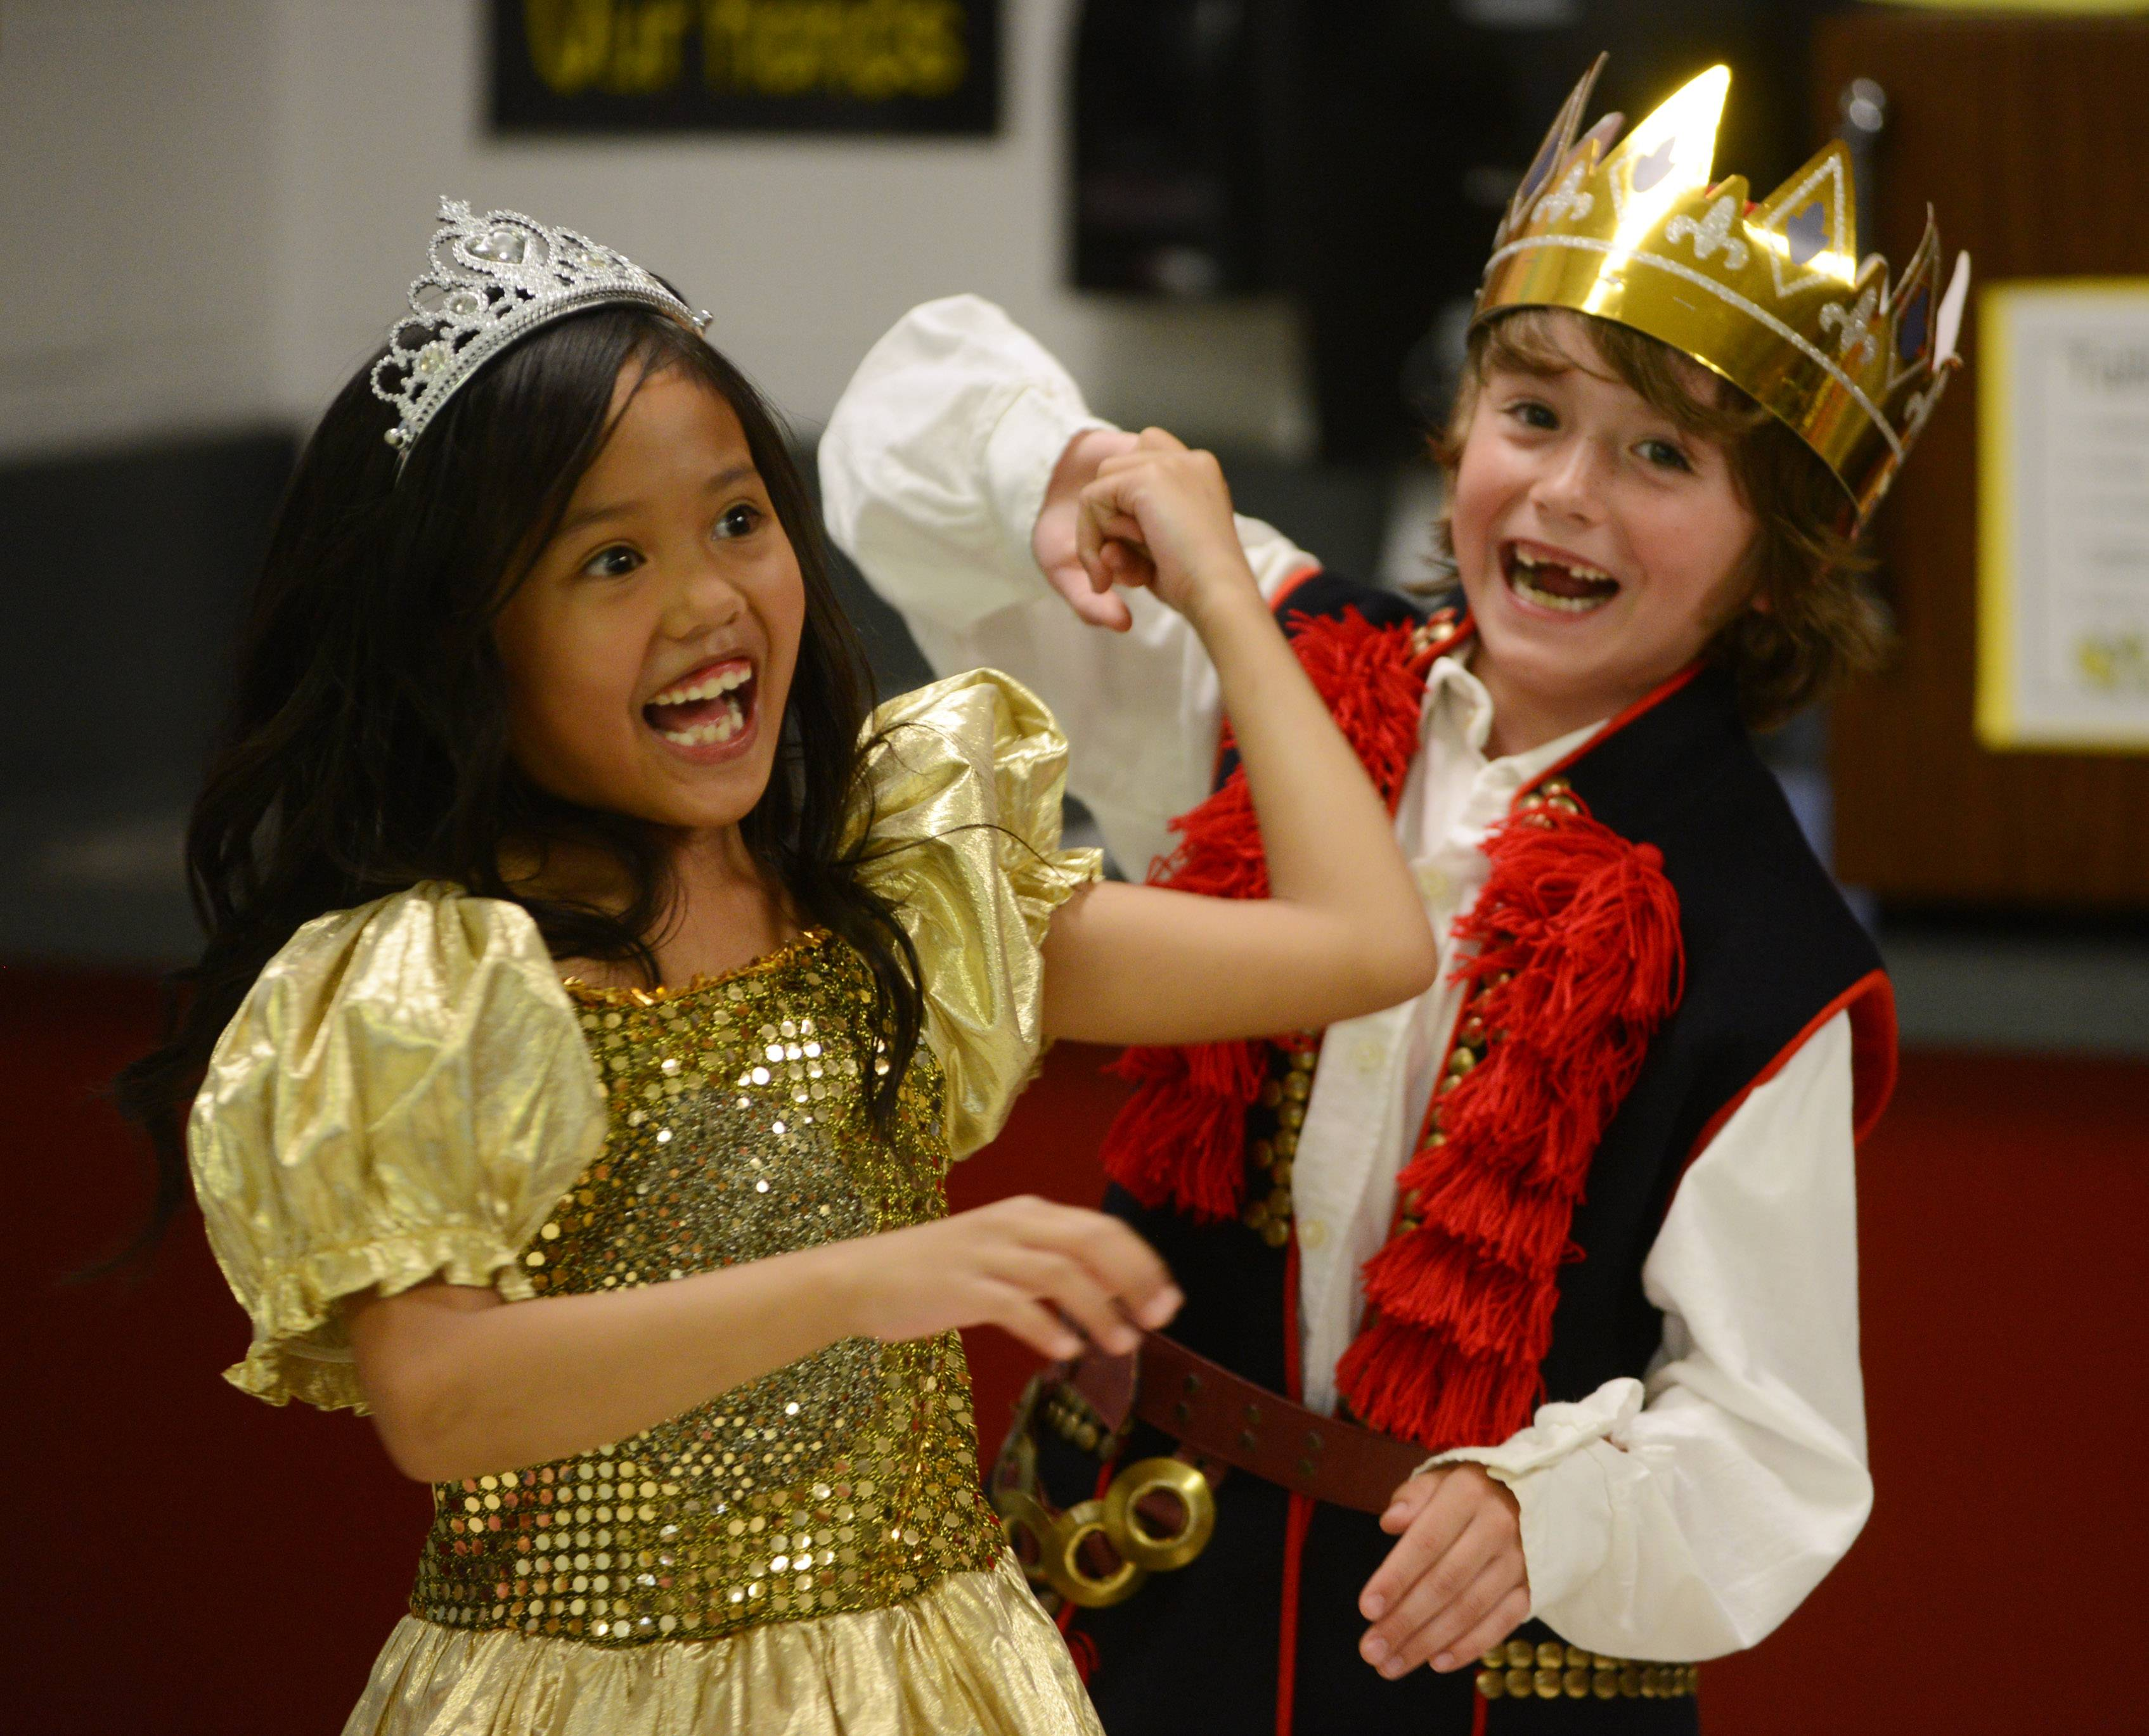 Woodland Elementary East second grade student Abby Mago, left, as Cinderella, and shares a dance with the prince, Bryce Carlton, during Tuesday's Readers Theater at the Gages Lake school. Twenty-one students in Krystyna Jakielski's class presented three stories to parents and siblings.